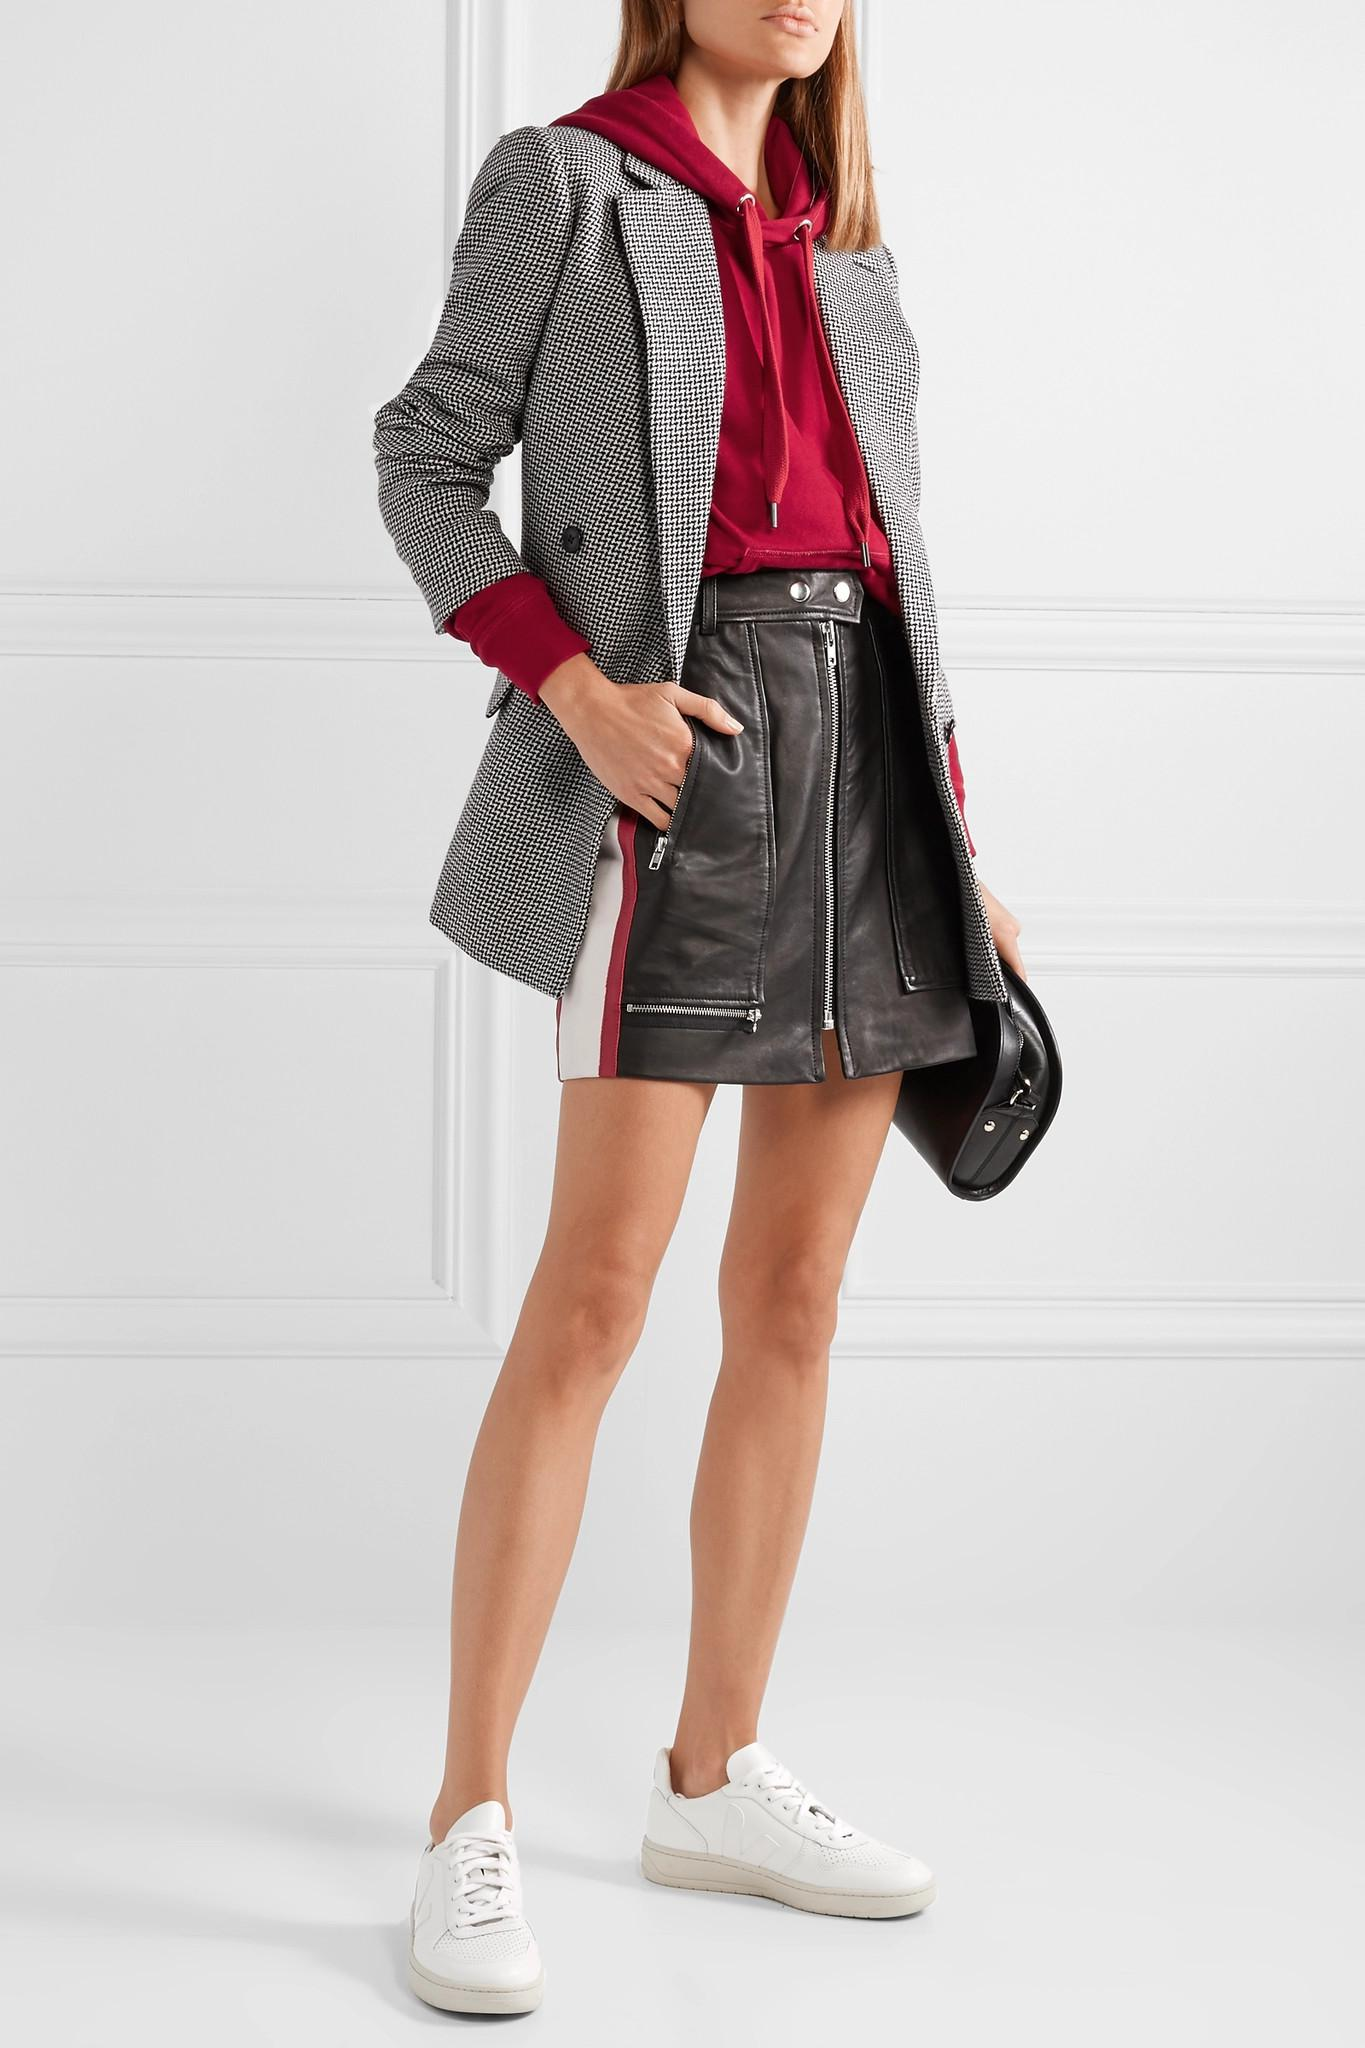 c666a91cb108 etoile-isabel-marant-black-Alynne-Striped-Leather-Mini-Skirt.jpeg